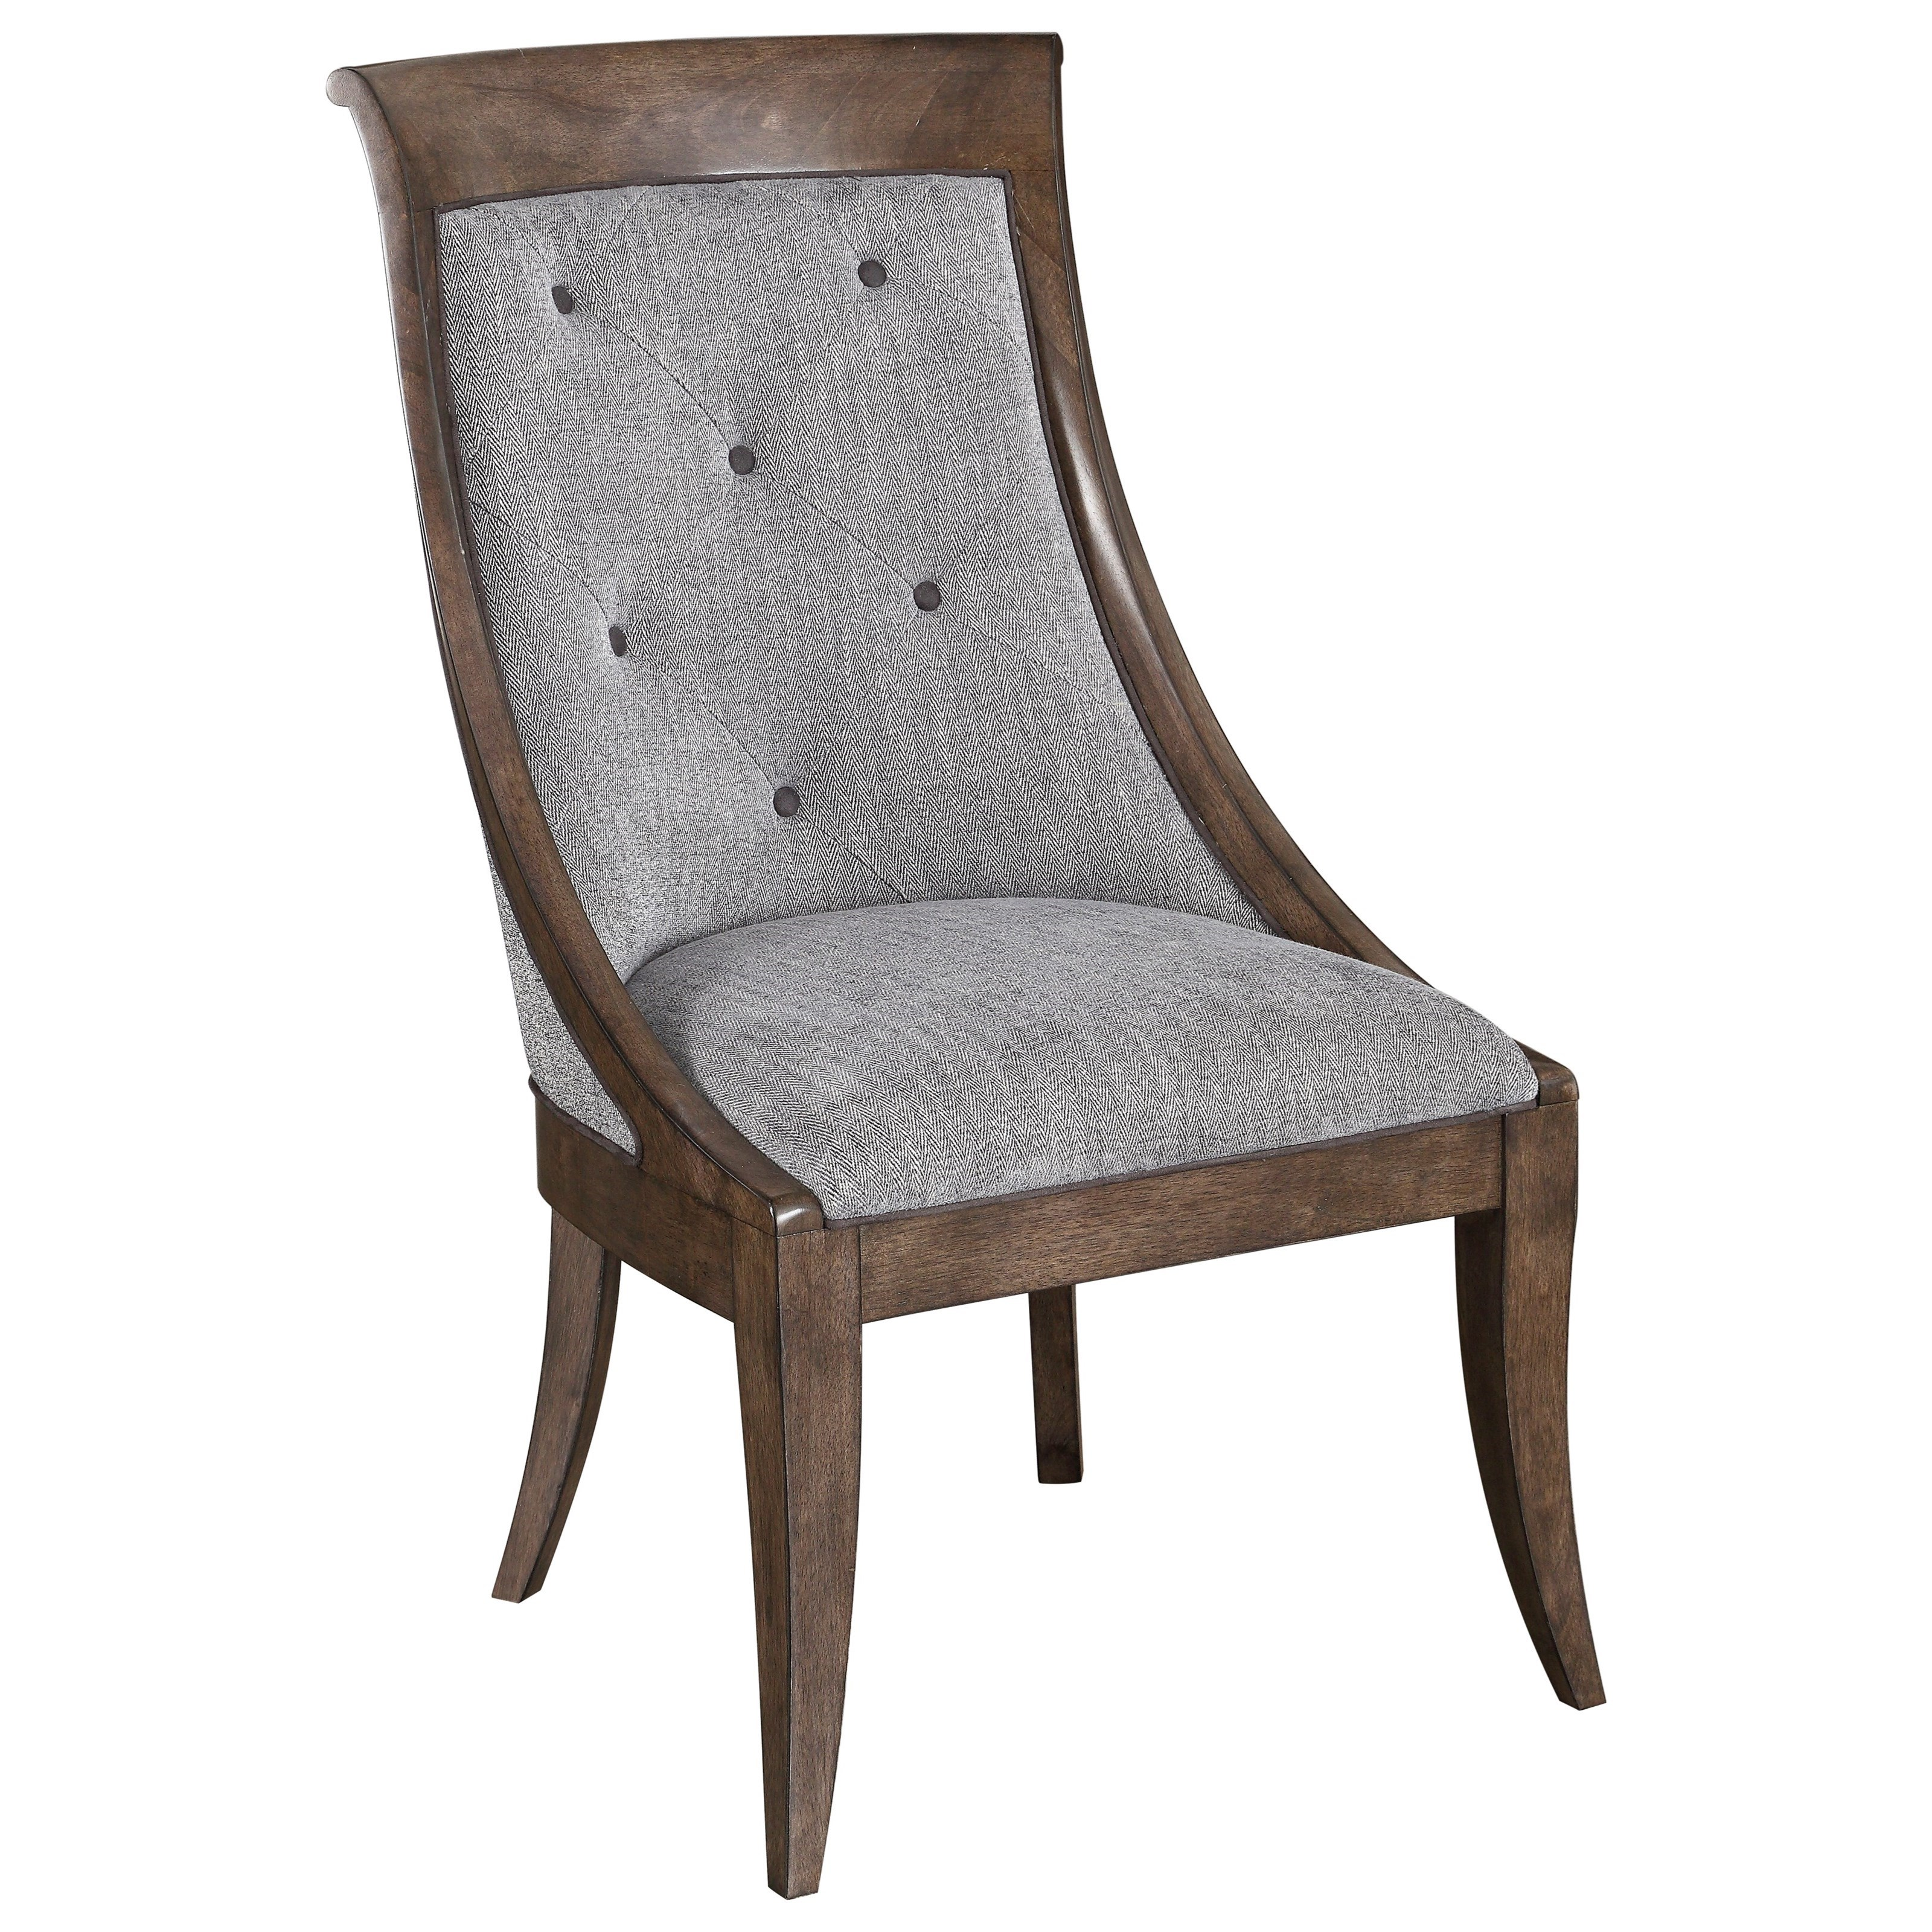 Landmark Tufted Sling Chair by A.R.T. Furniture Inc at Hudson's Furniture